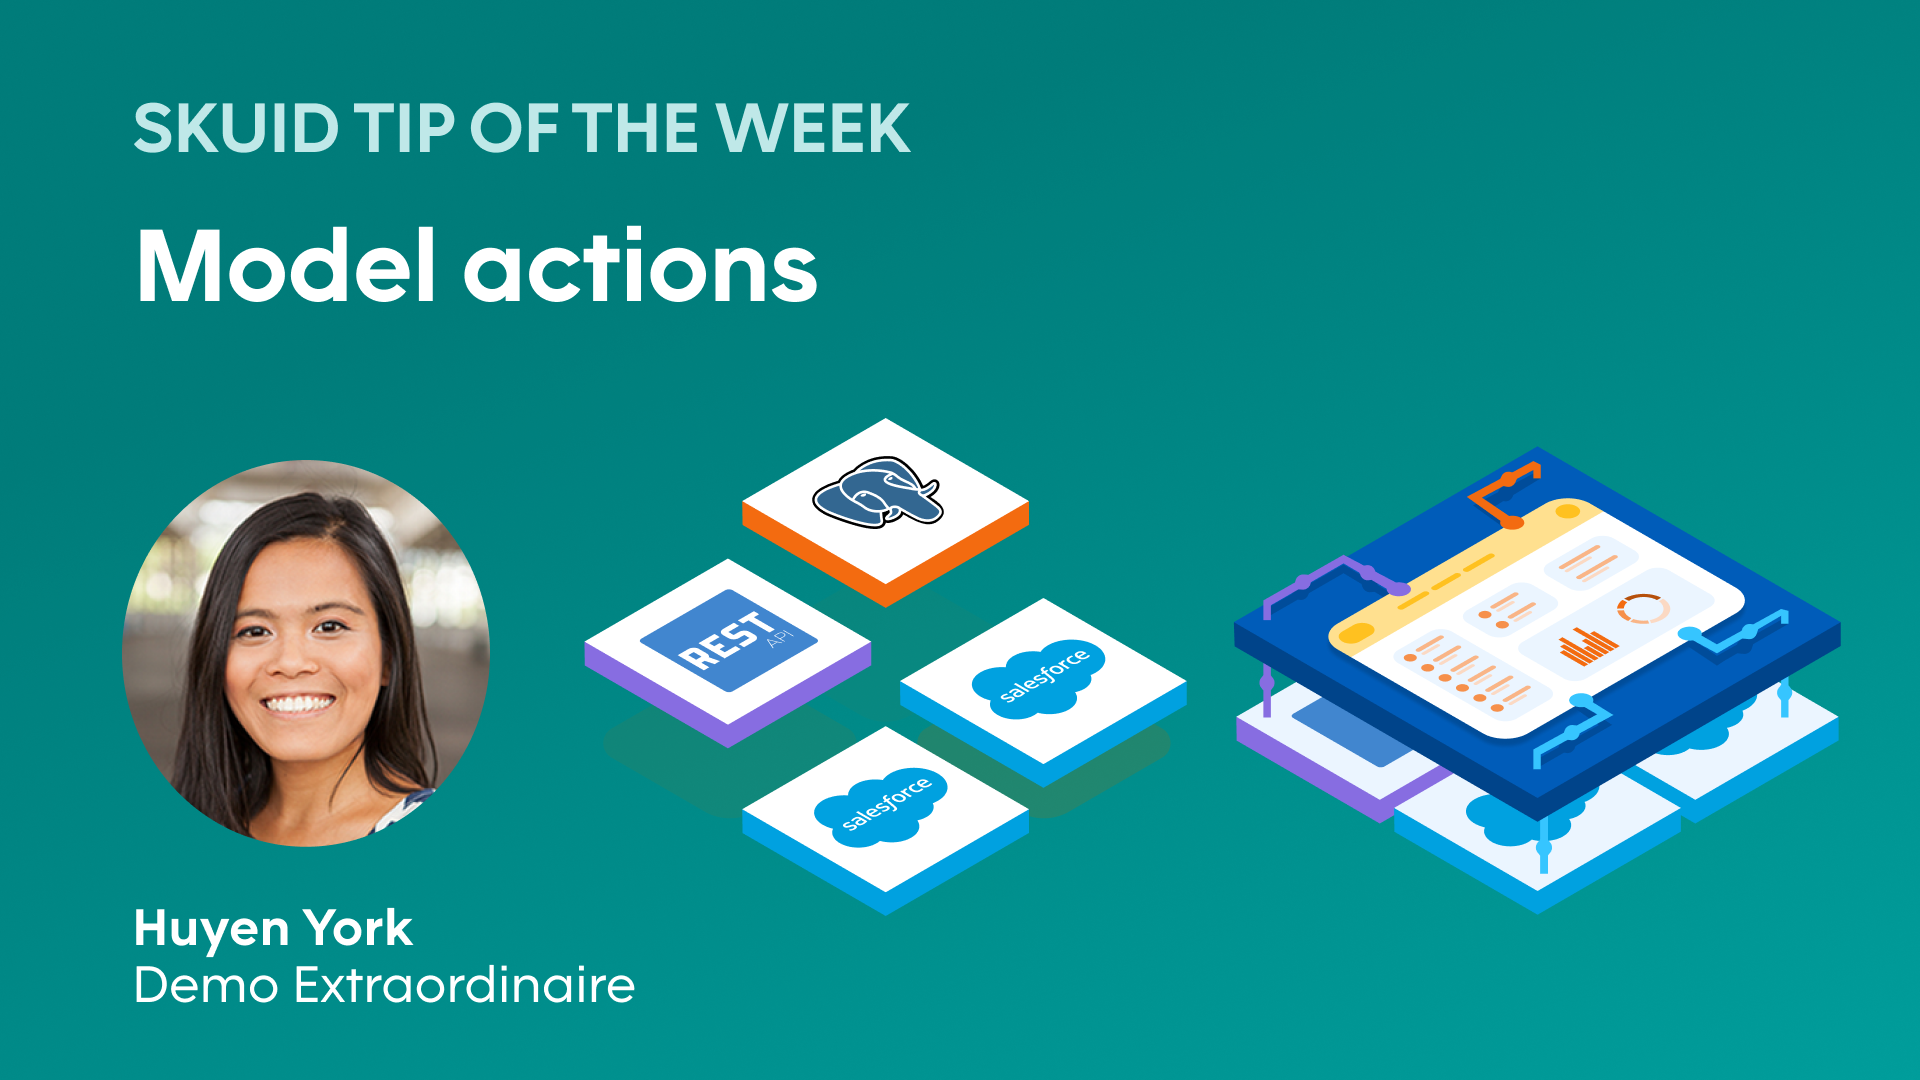 Skuid tip of the week | Model actions [graphic: different data source icons connecting to a Skuid user interface, image: Huyen Yourk] Huyen York, Demo Extraordinaire